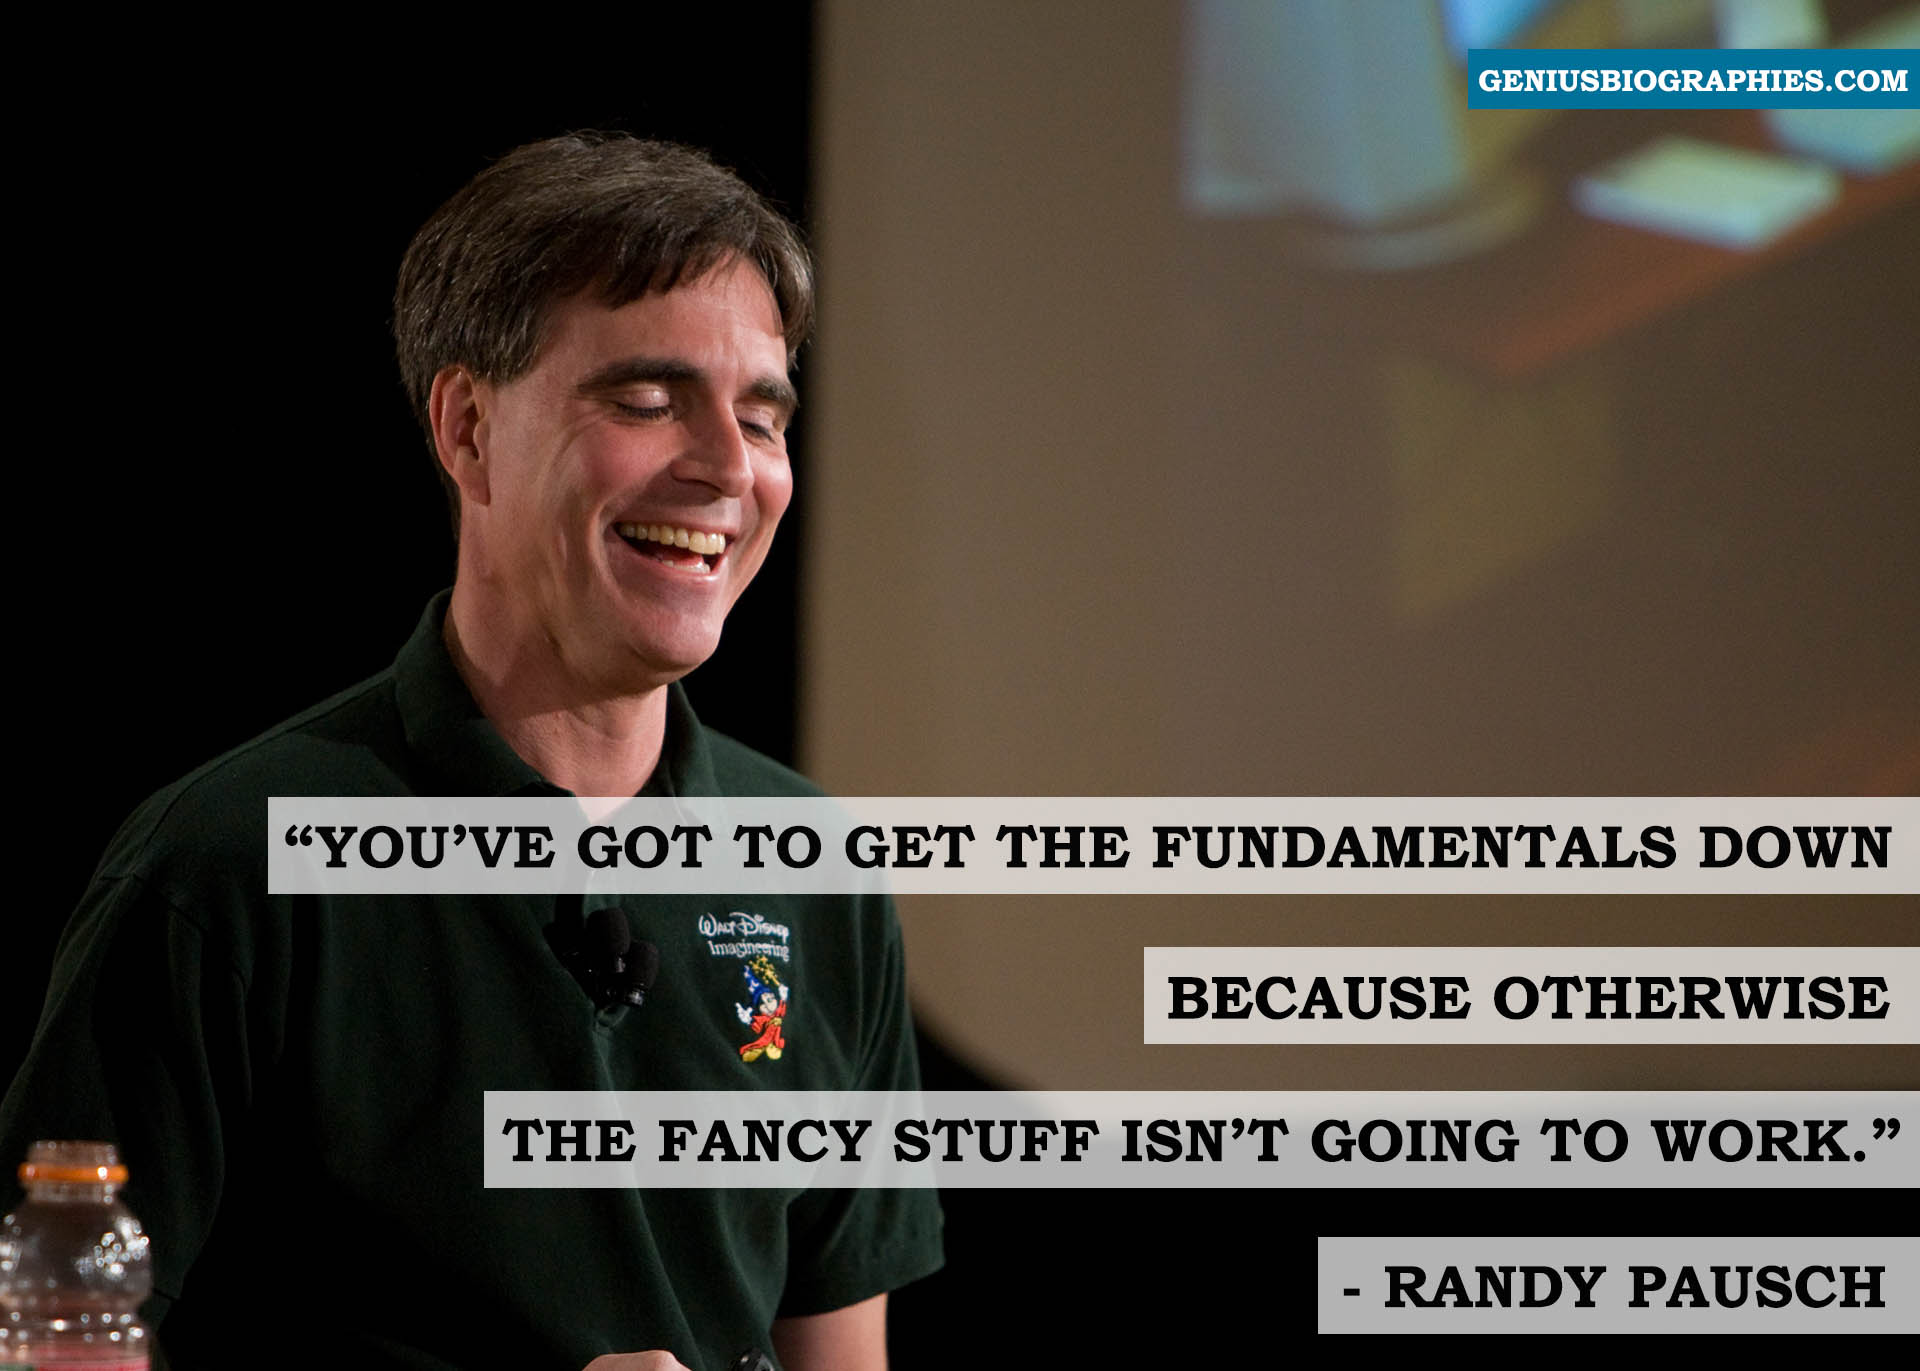 Randy Pausch and a quote of